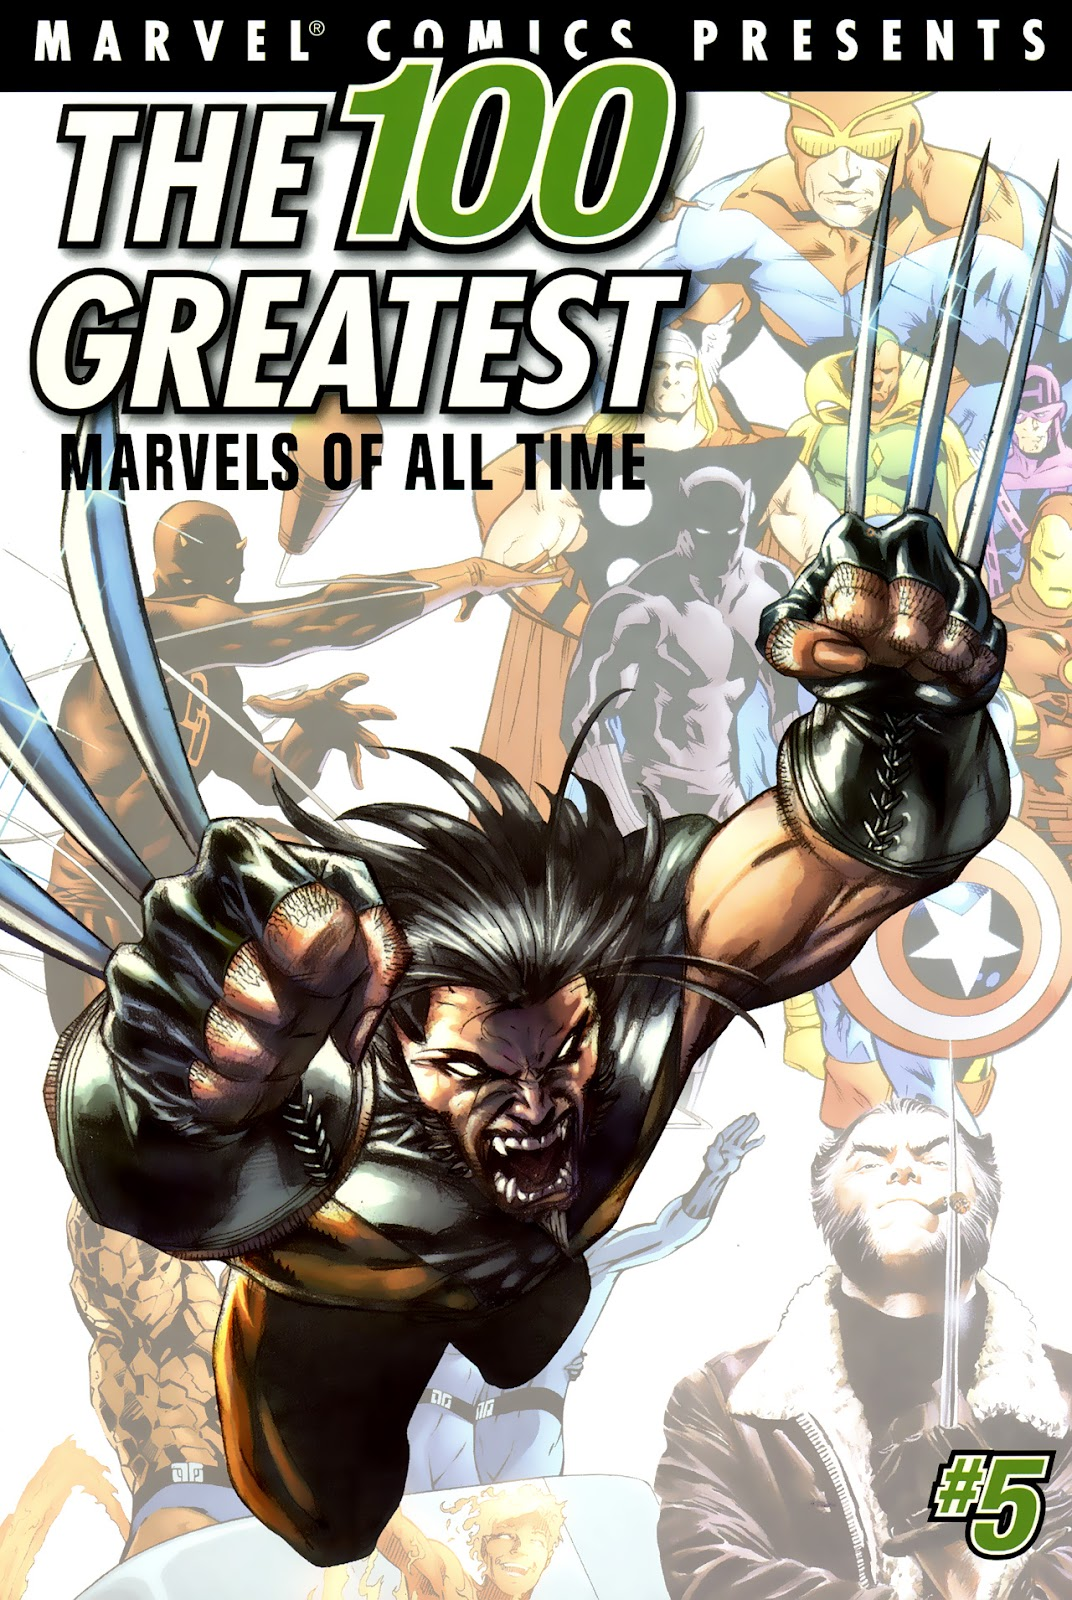 The 100 Greatest Marvels of All Time 6 Page 1